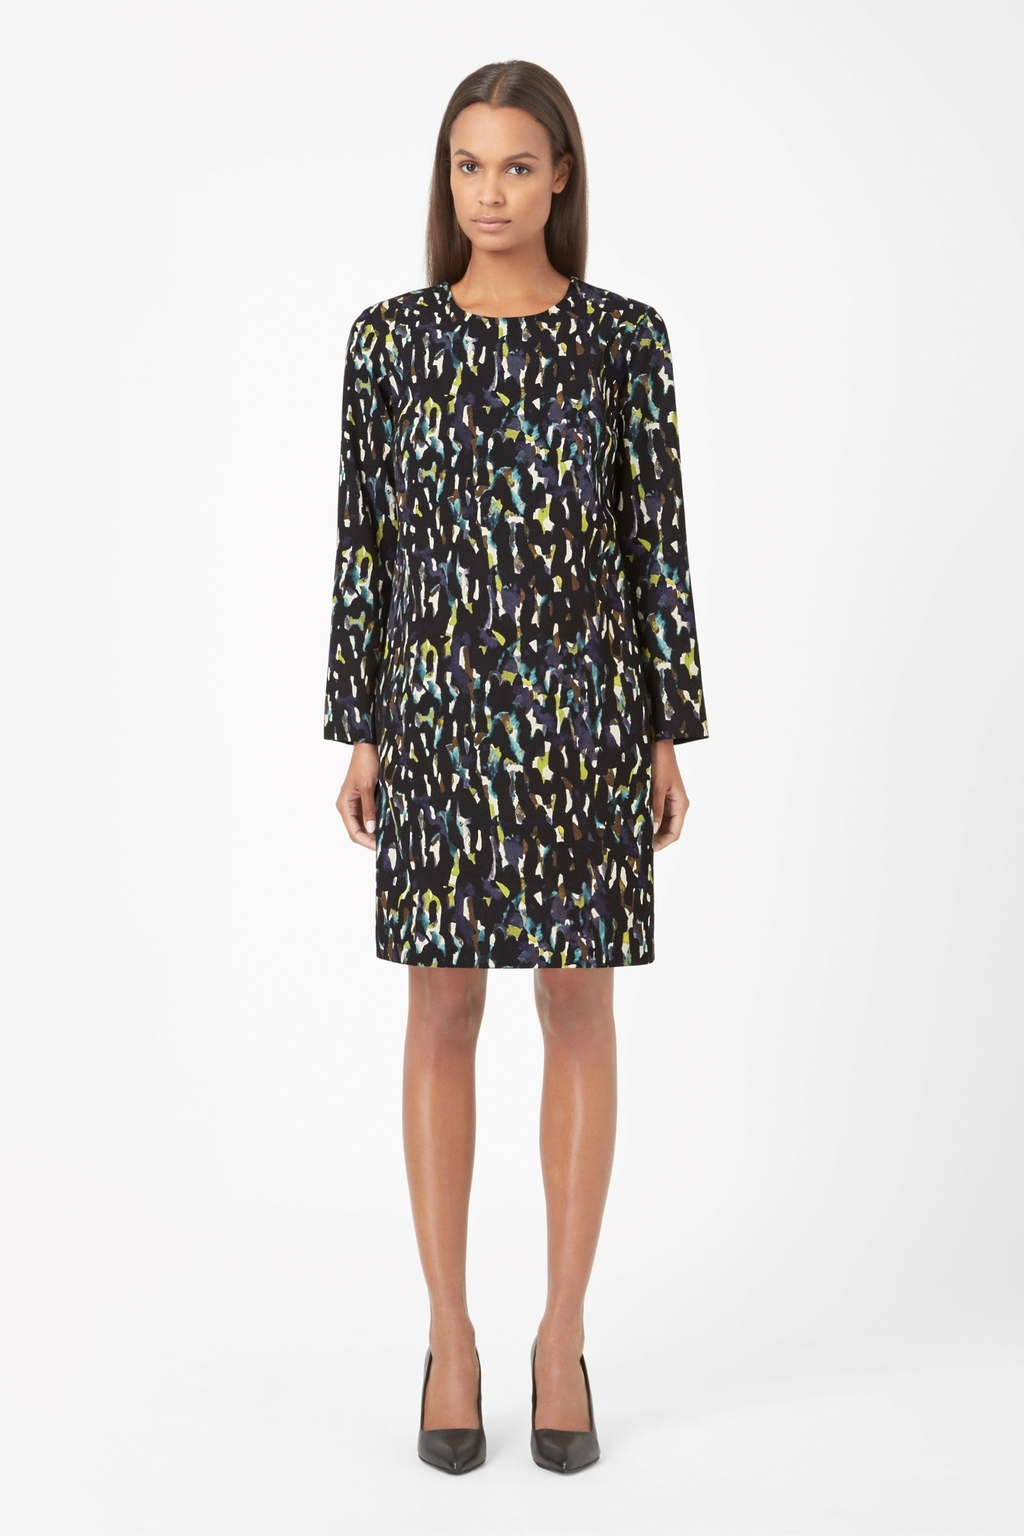 Printed Wool Dress - style: shift; secondary colour: yellow; predominant colour: black; occasions: evening, creative work; length: on the knee; fit: body skimming; fibres: wool - 100%; neckline: crew; sleeve length: long sleeve; sleeve style: standard; pattern type: fabric; pattern: patterned/print; texture group: woven light midweight; season: a/w 2014